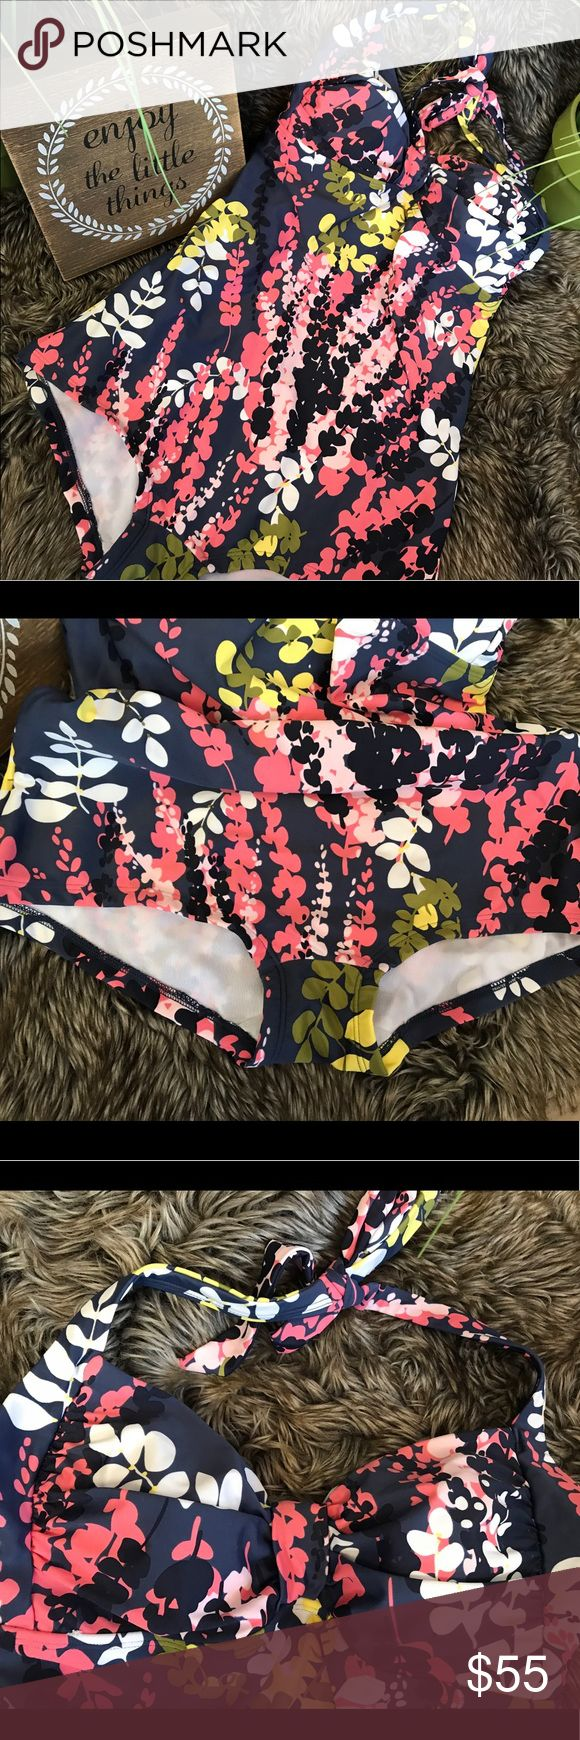 NWT Boden Retro One-Piece Floral Navy Swimsuit 8 New retro cut with ruched bust for pin-up fullness and retro cut bottom.  Size 8 US or U.K. 12.  Totally Marilyn Monroe Esther Williams vibe.  Fully lined.no underwire.  Halter style Boden Swim One Pieces